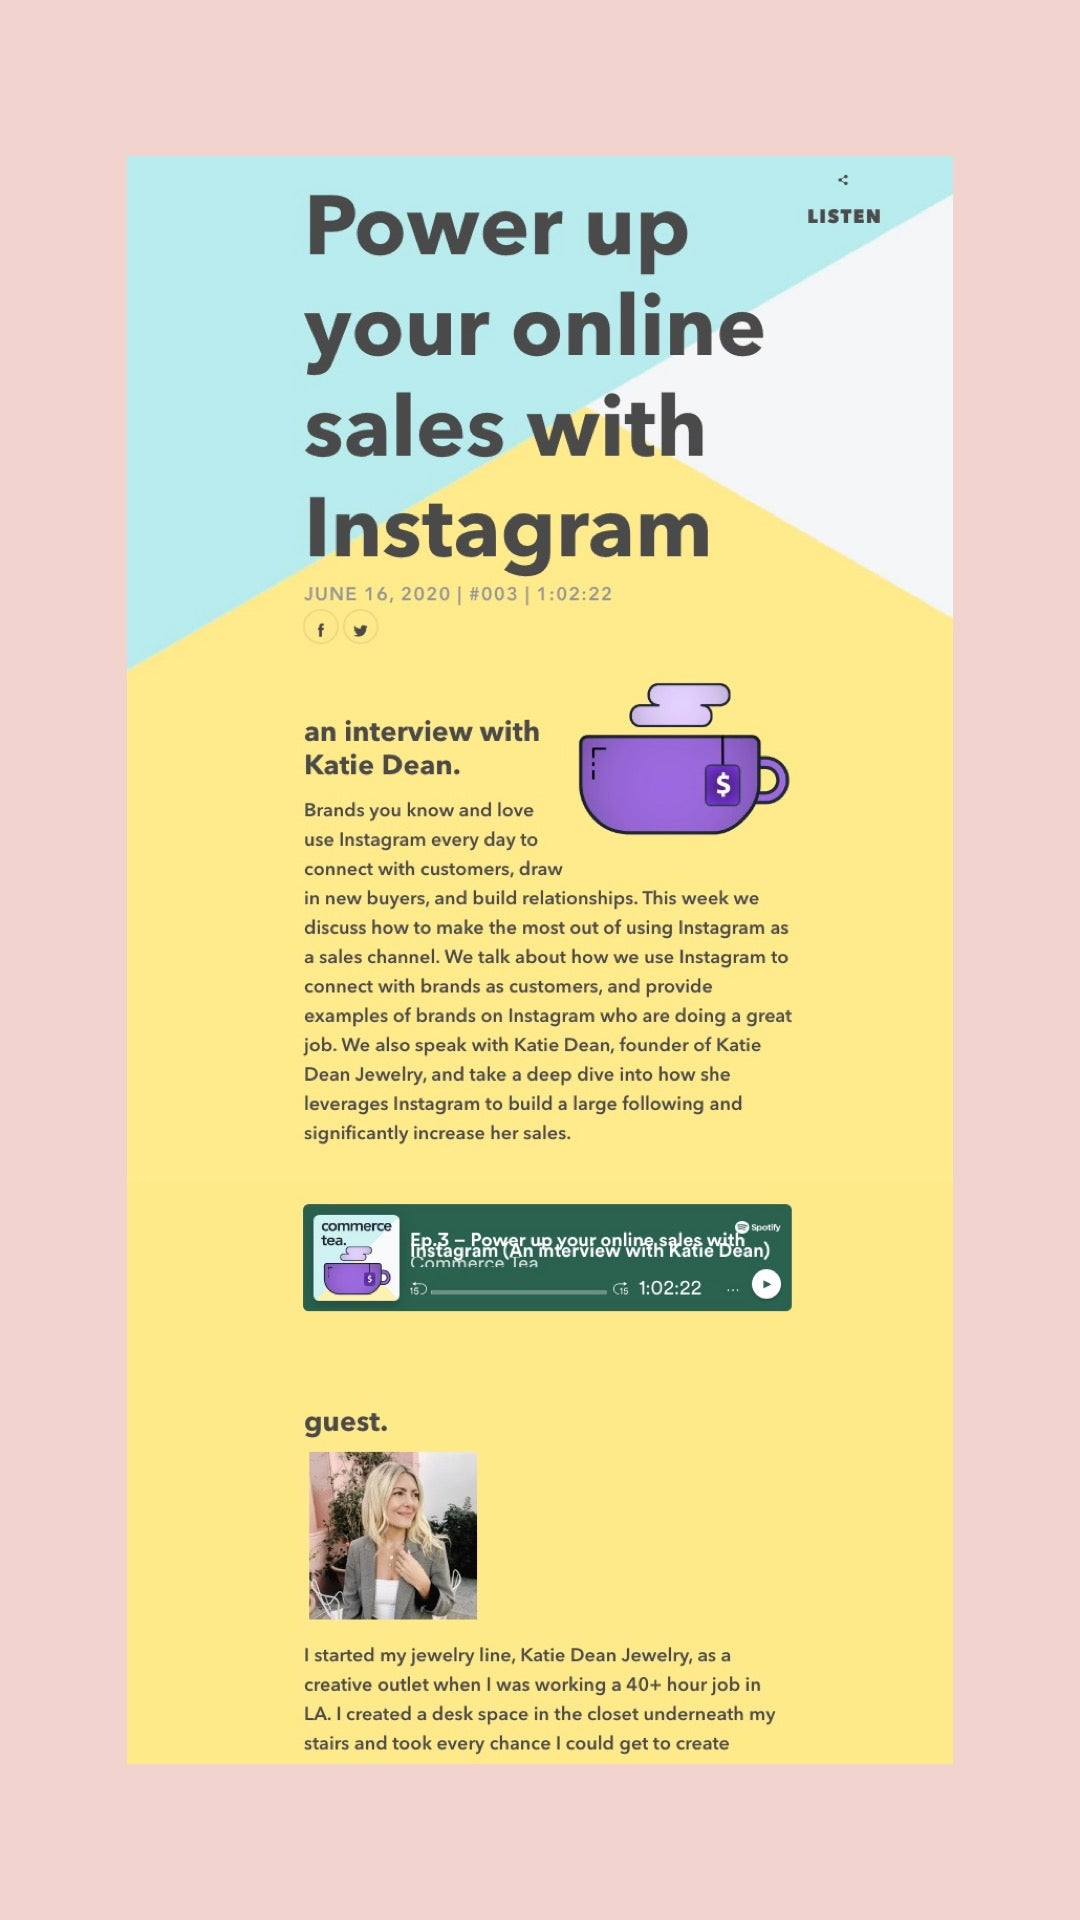 Image showing the Commerce Tea Podcast icon and text of the power-up-your-online-sales-with-instagram podcast interview with Katie Dean